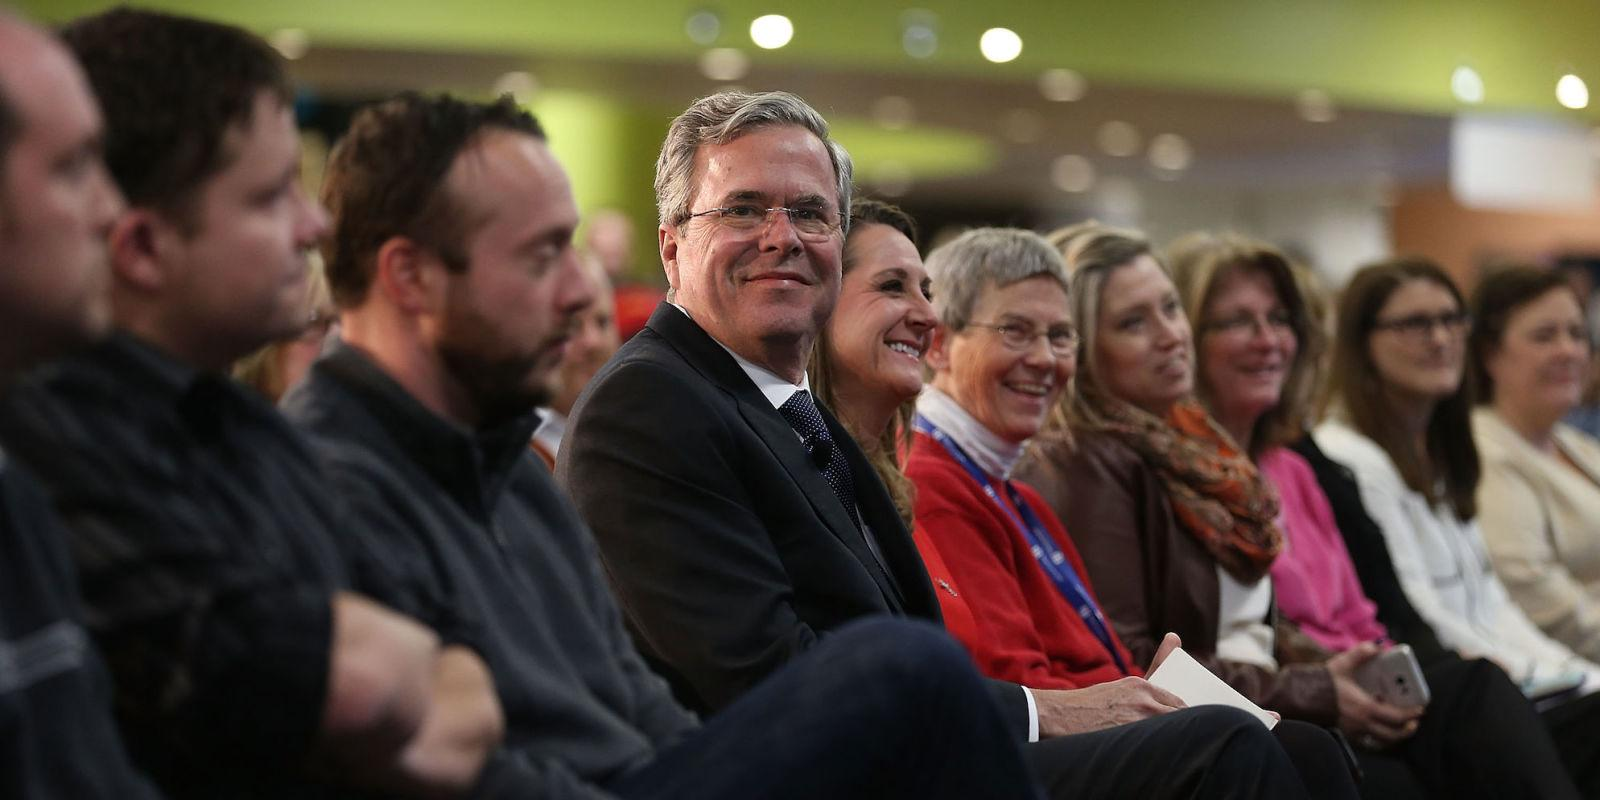 Here's Jeb (!)'s Problem: He Showed Up to a Food Fight in a Tuxedo